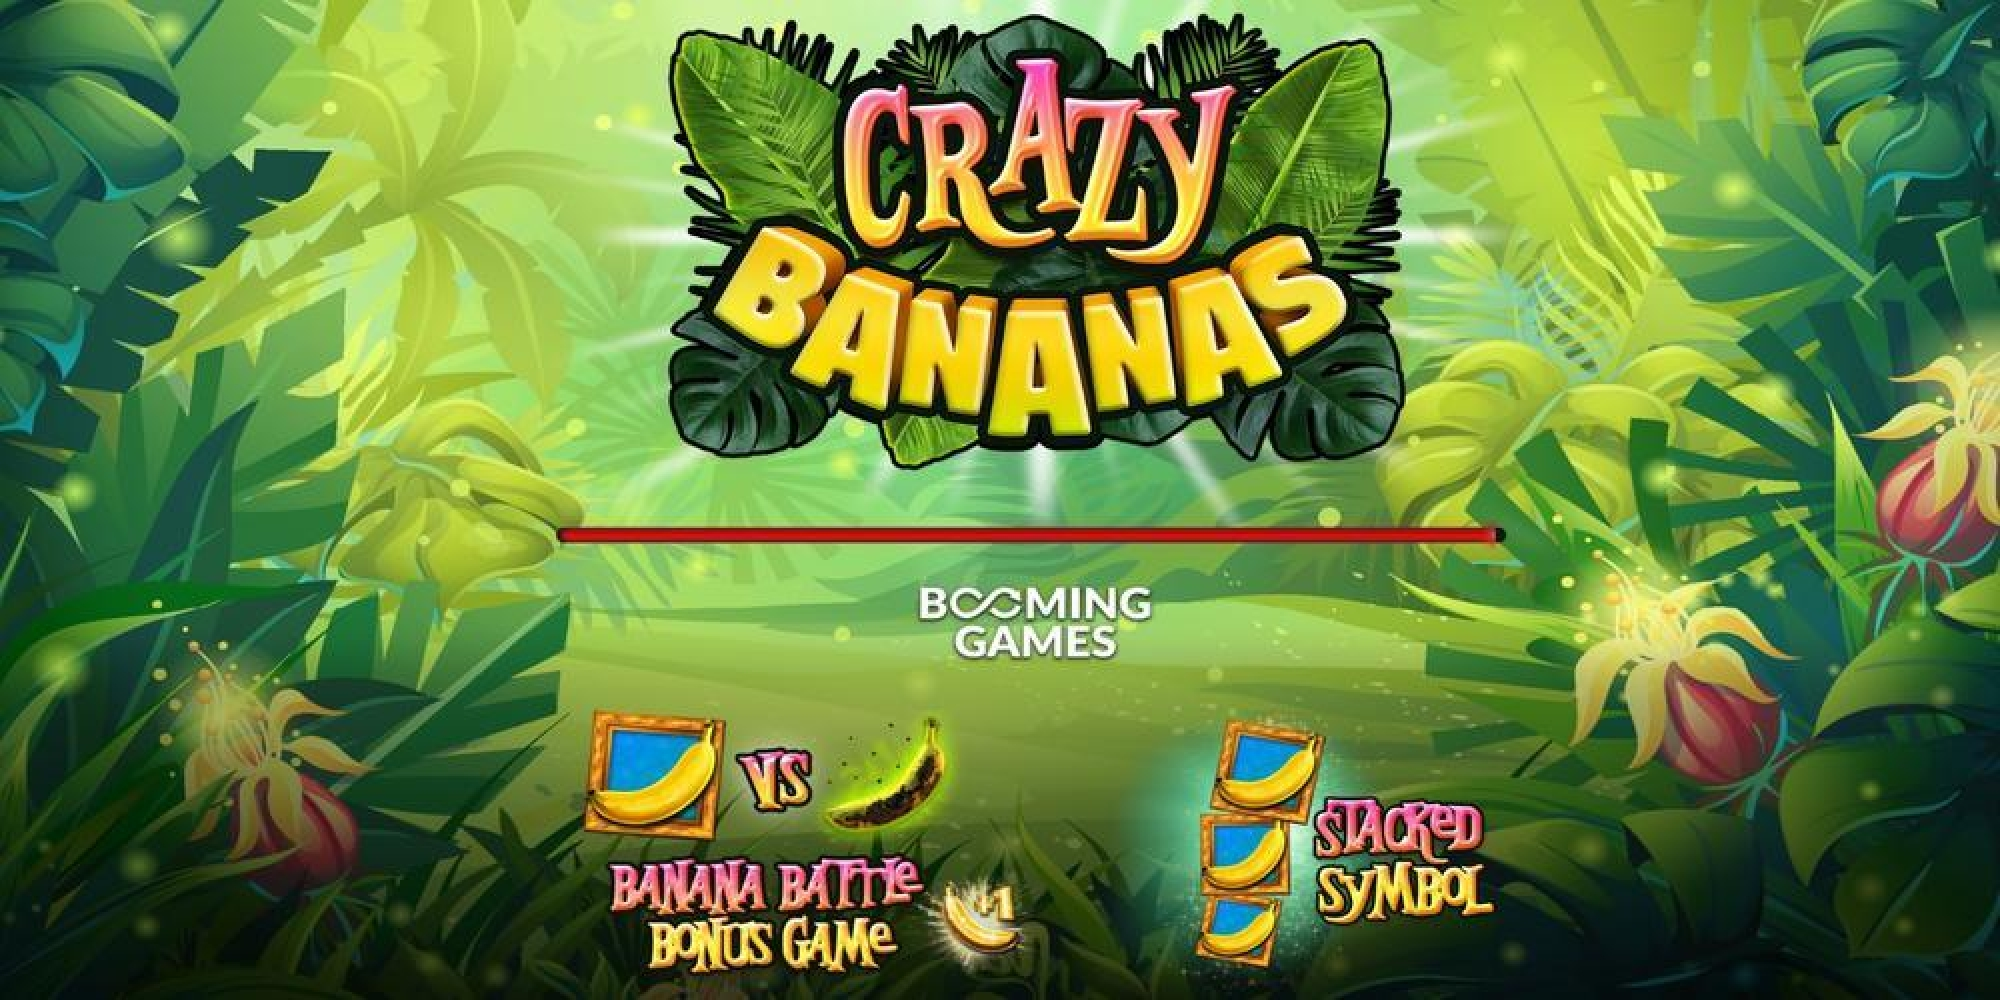 The Crazy Bananas Online Slot Demo Game by Booming Games